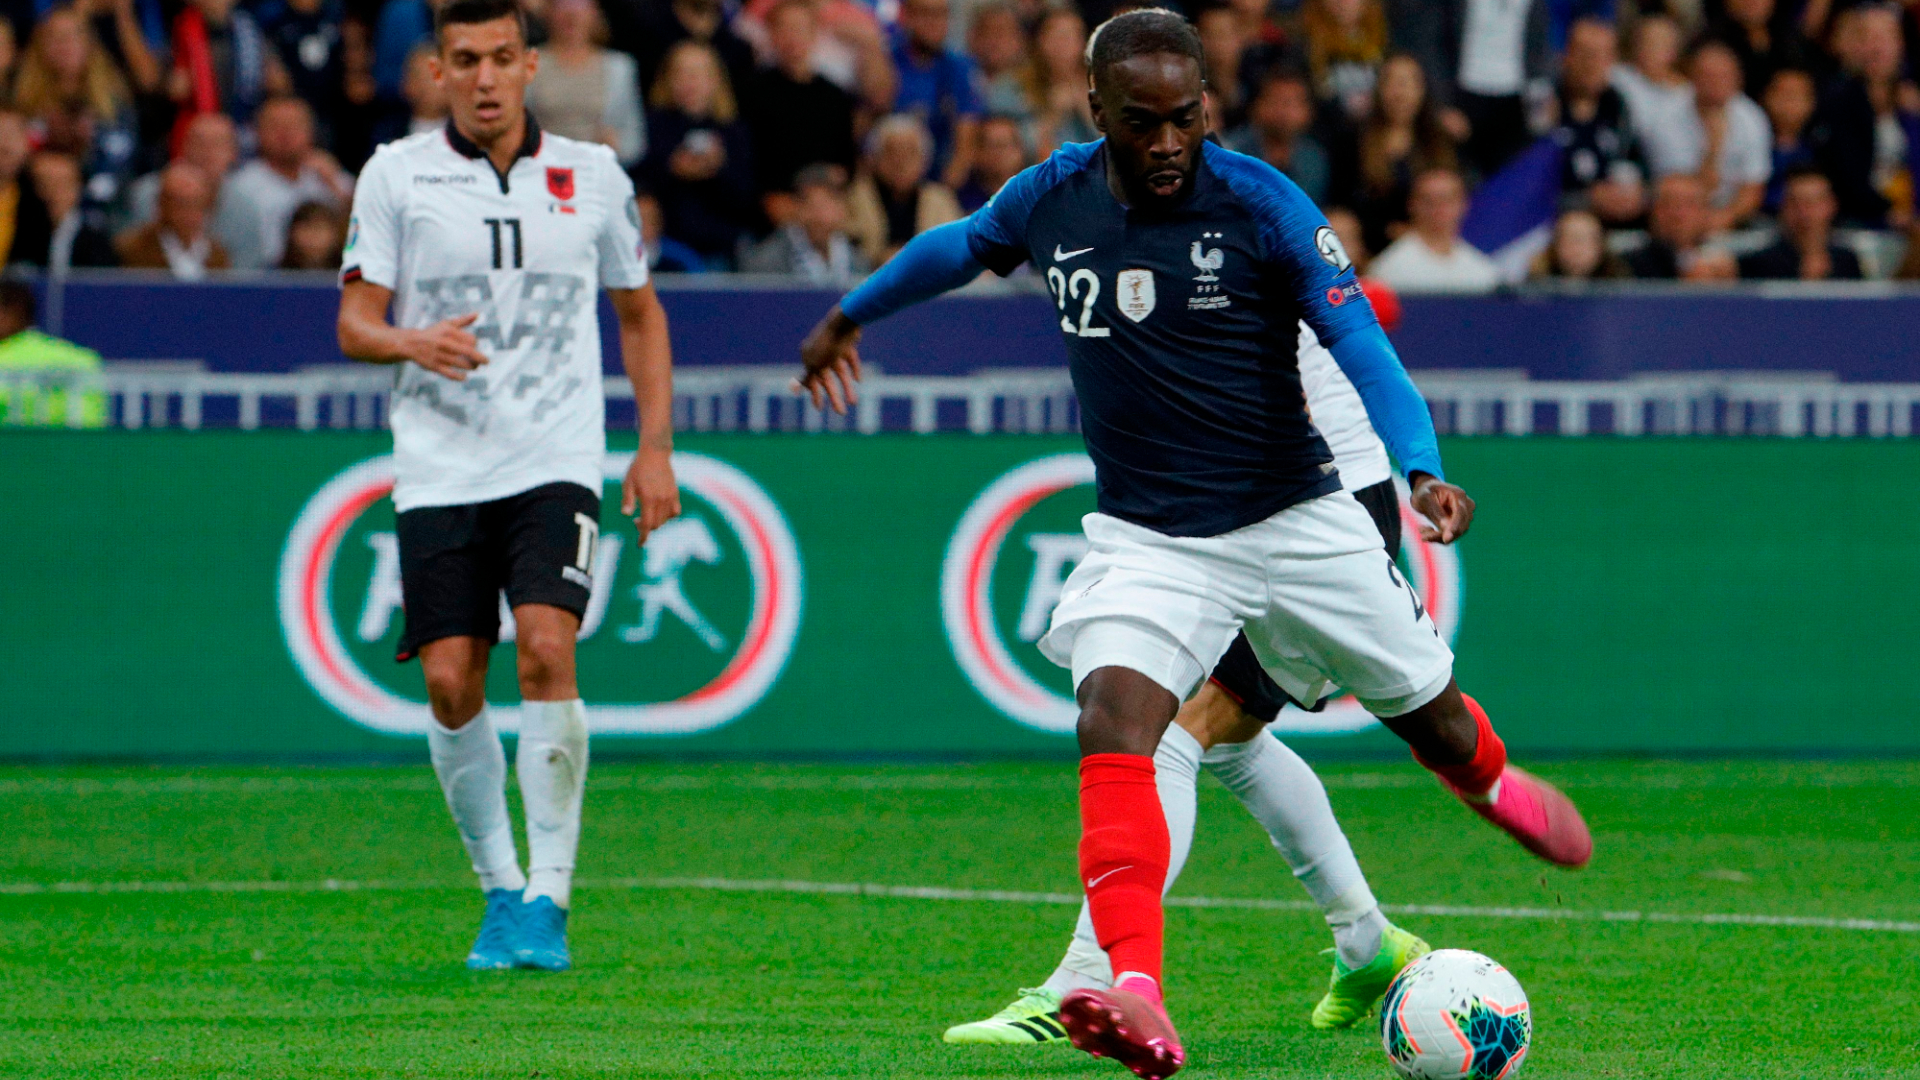 Lille starlet Ikone has 'no regrets' about PSG exit after scoring on France debut